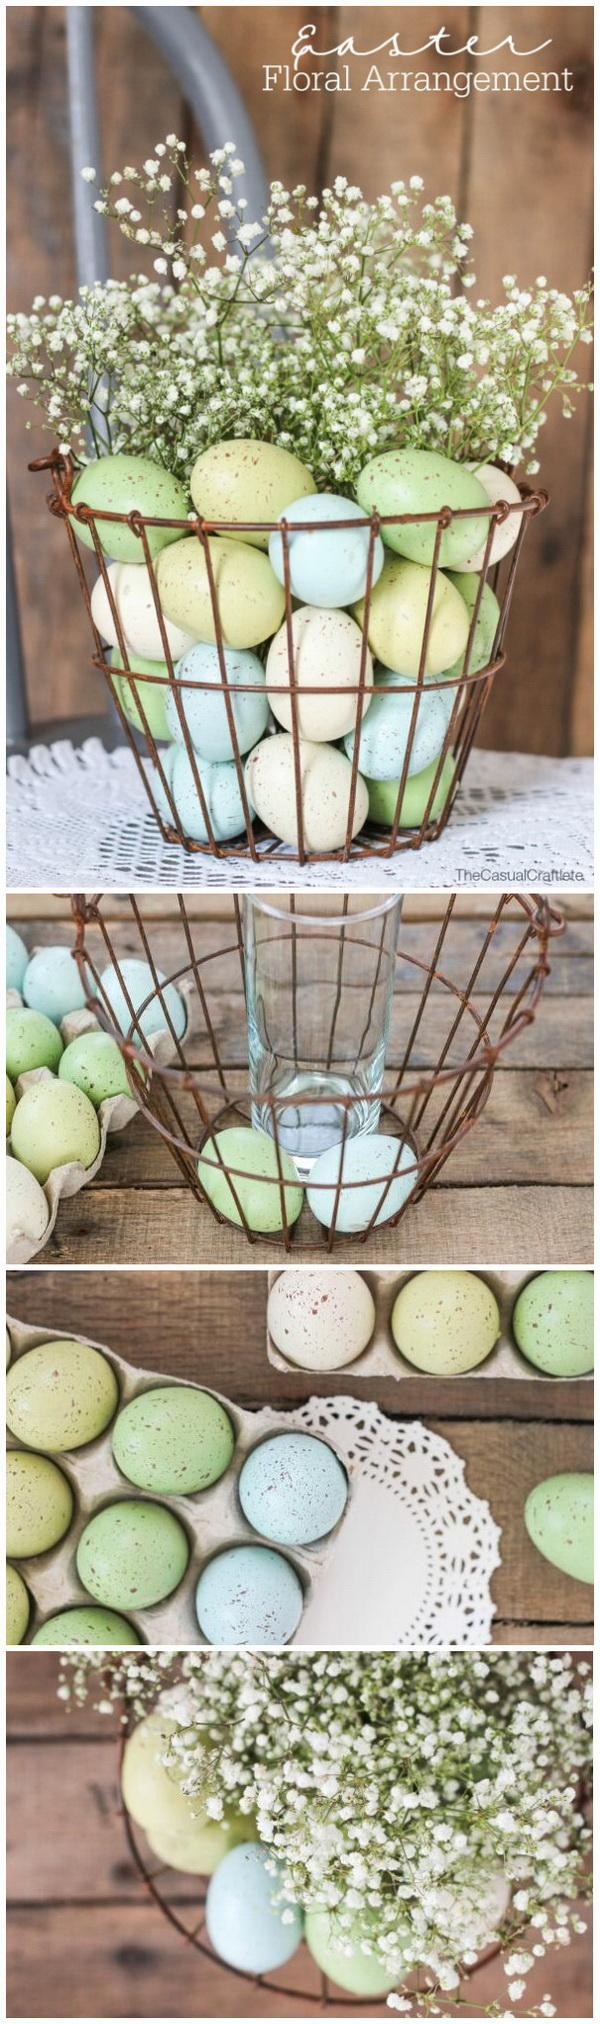 DIY Easter Decoration Ideas: Basket of Eggs Kissed with Baby's Breath.